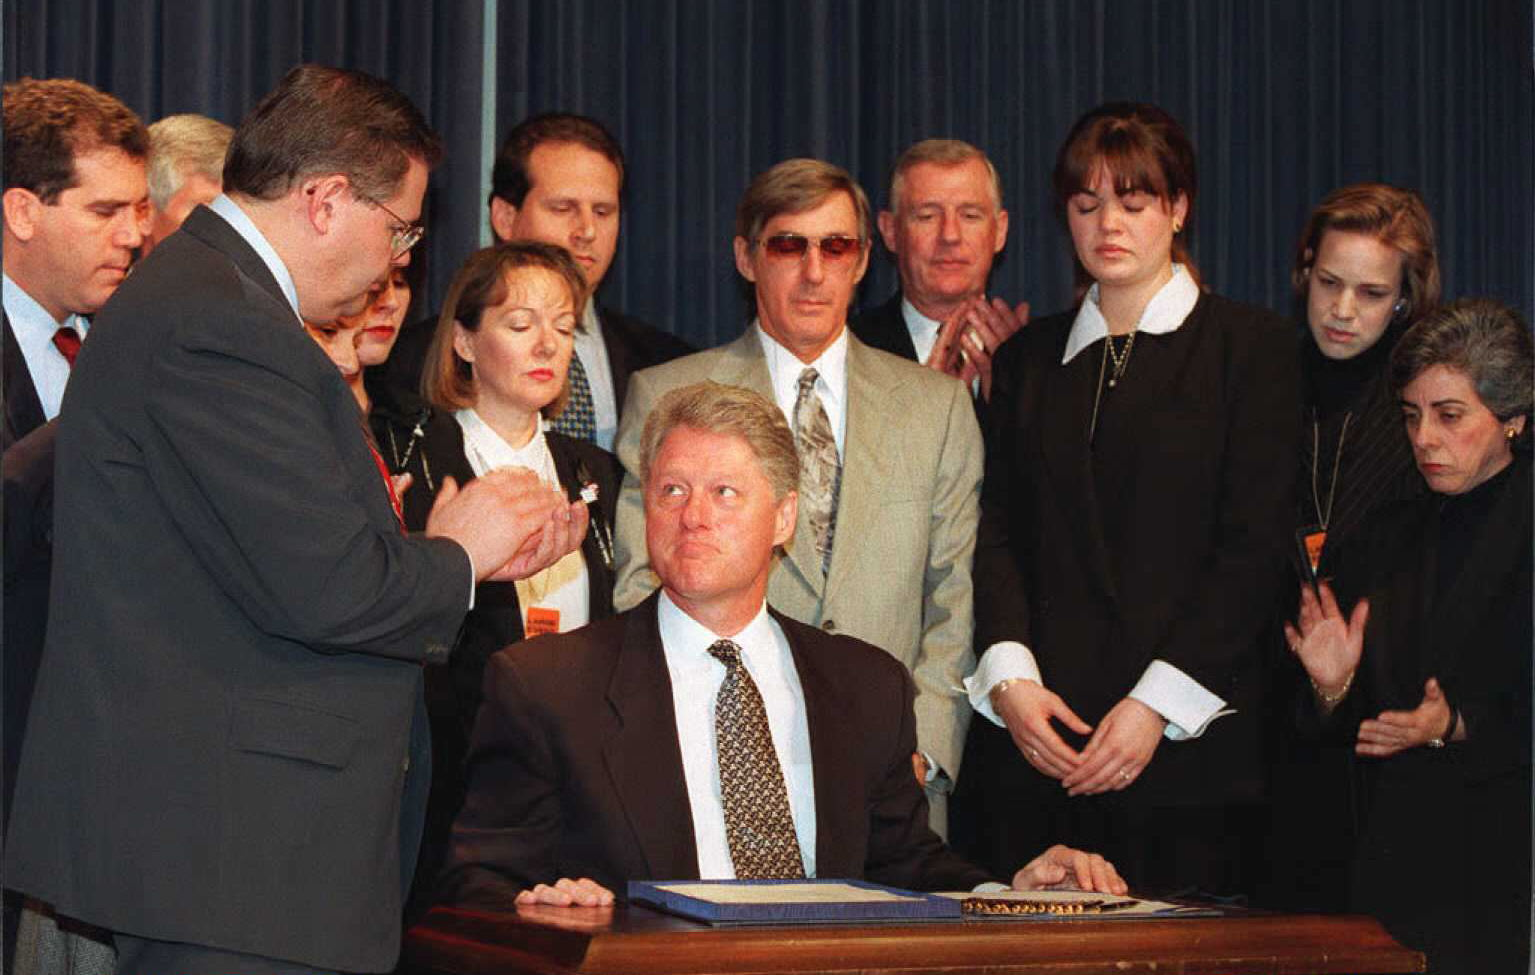 President Bill Clinton signs the Helms-Burton Act into law in 1996. The bill toughened the embargo on Cuba and restricted the president's power to end it.